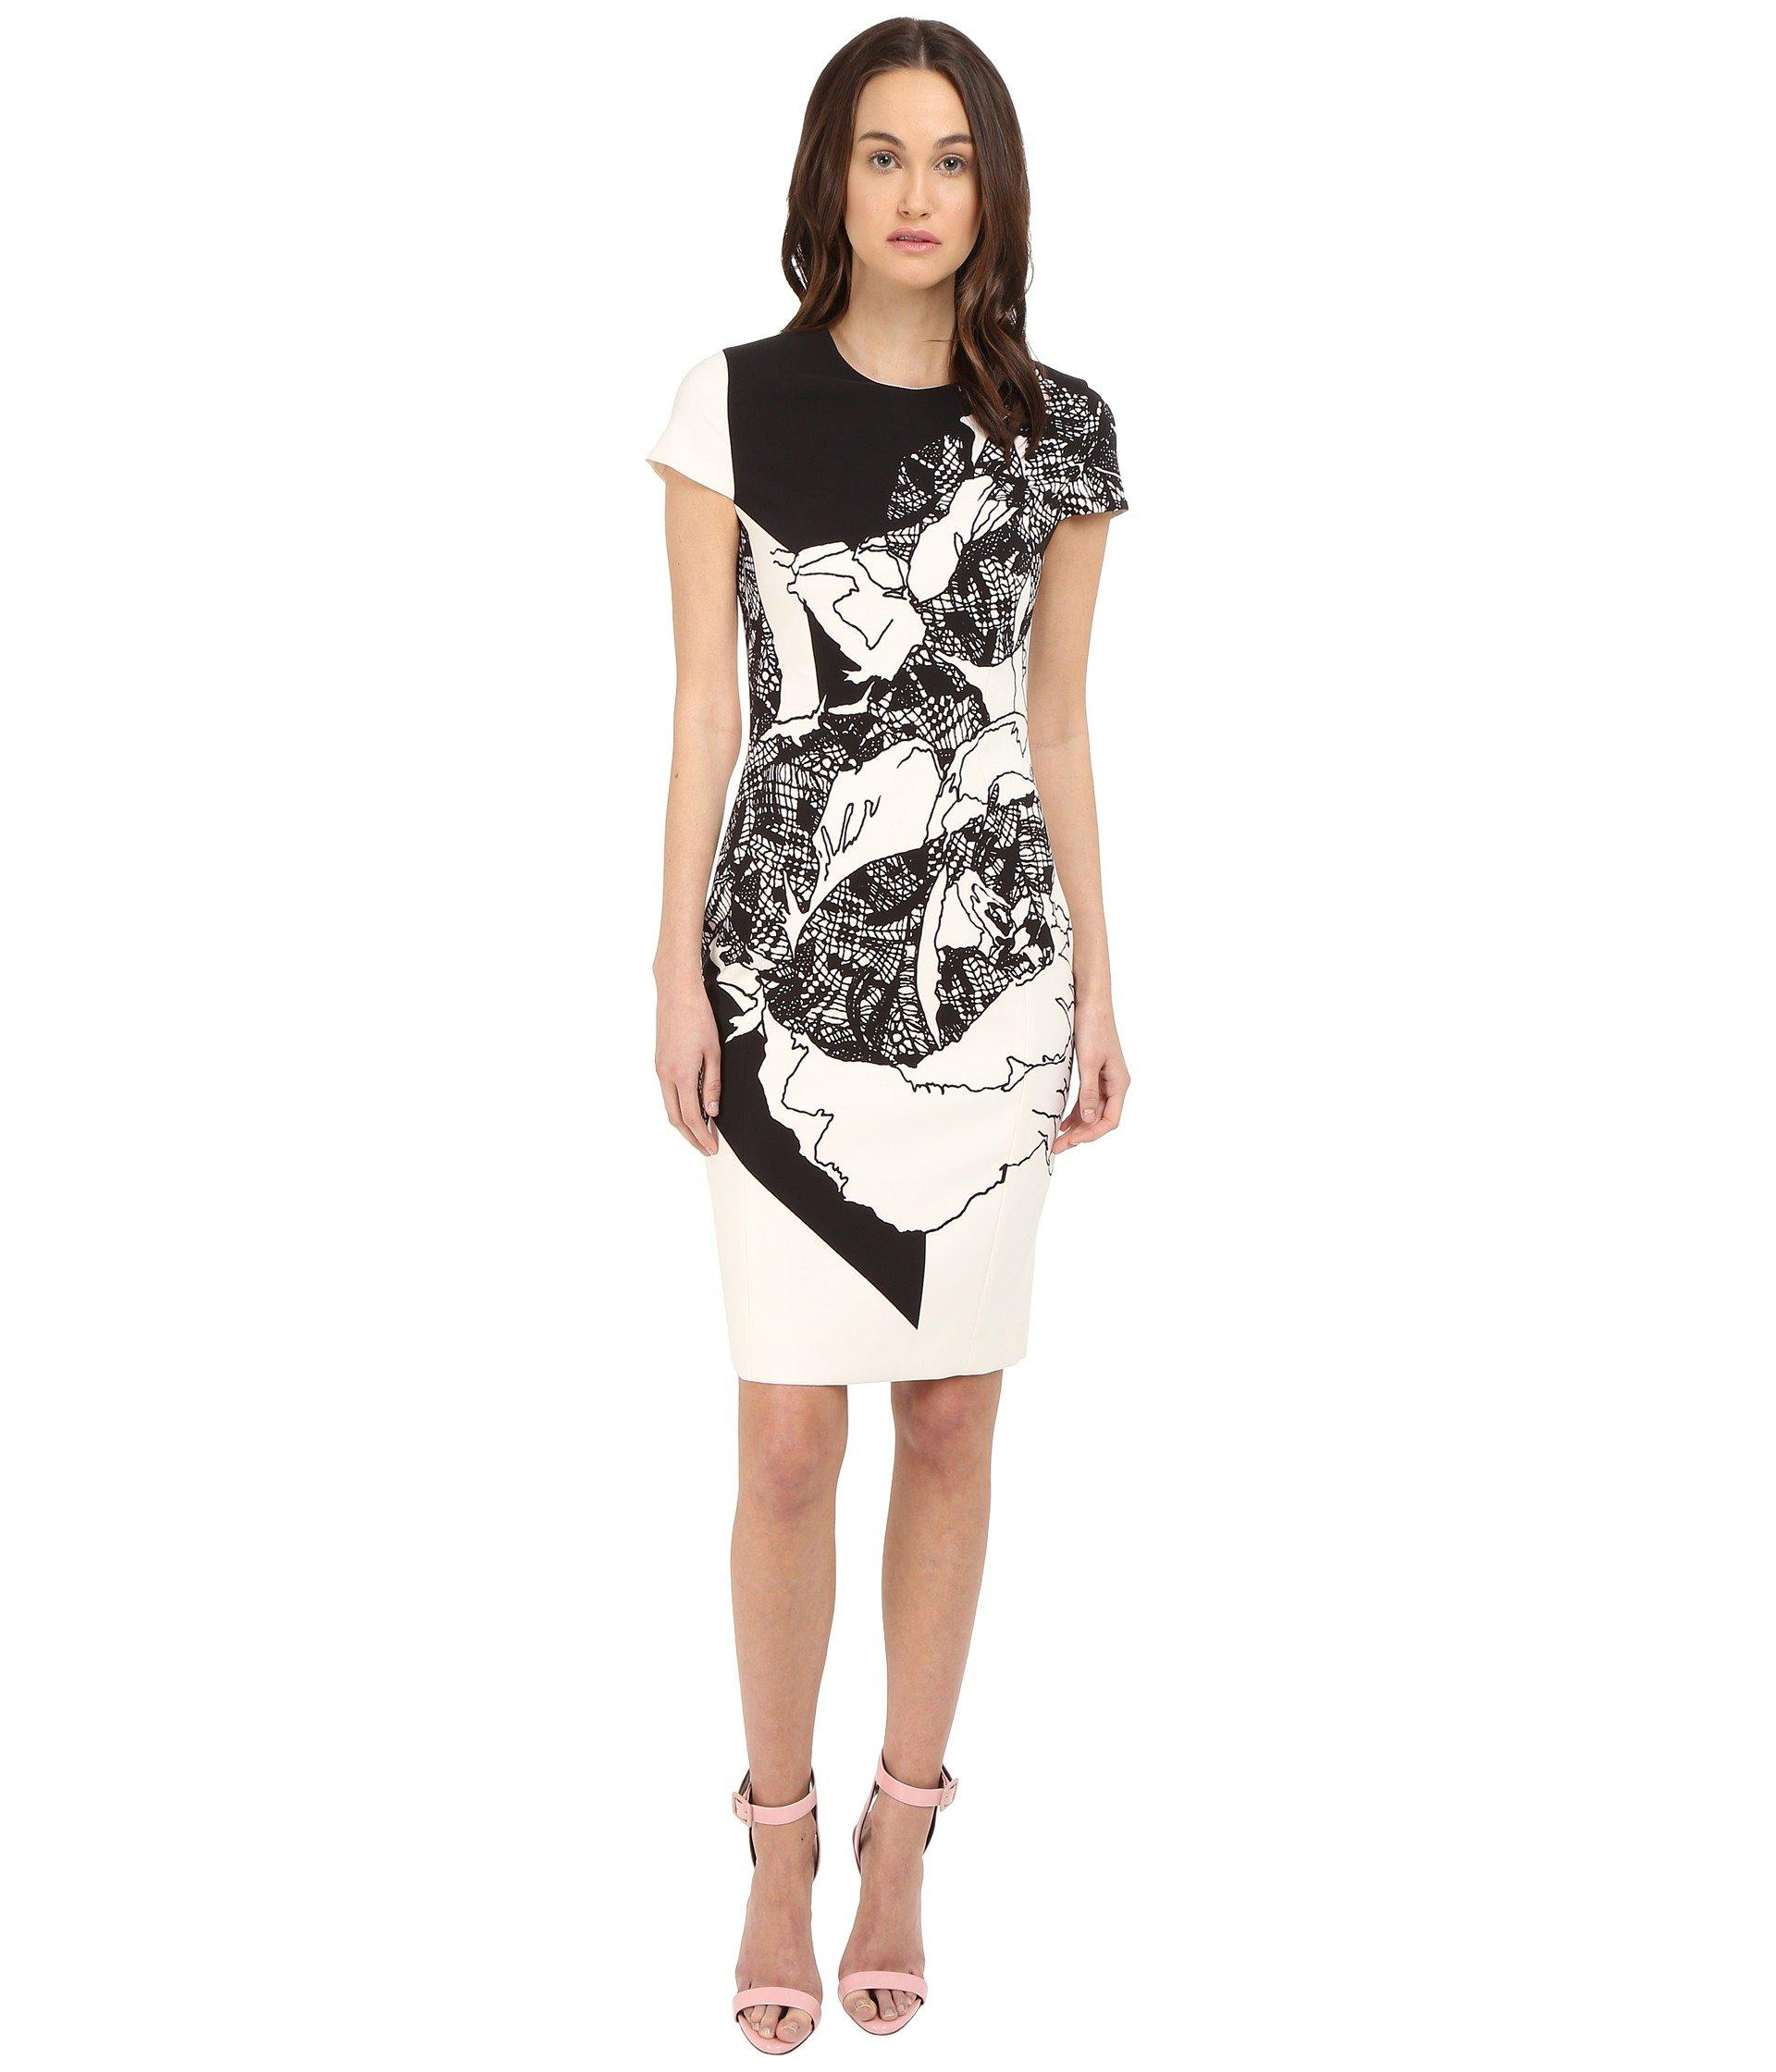 4e0c08f82 Prabal Gurung Multi Floral Lace Print Short Sleeve Dress In Black White  Floral Lace Print